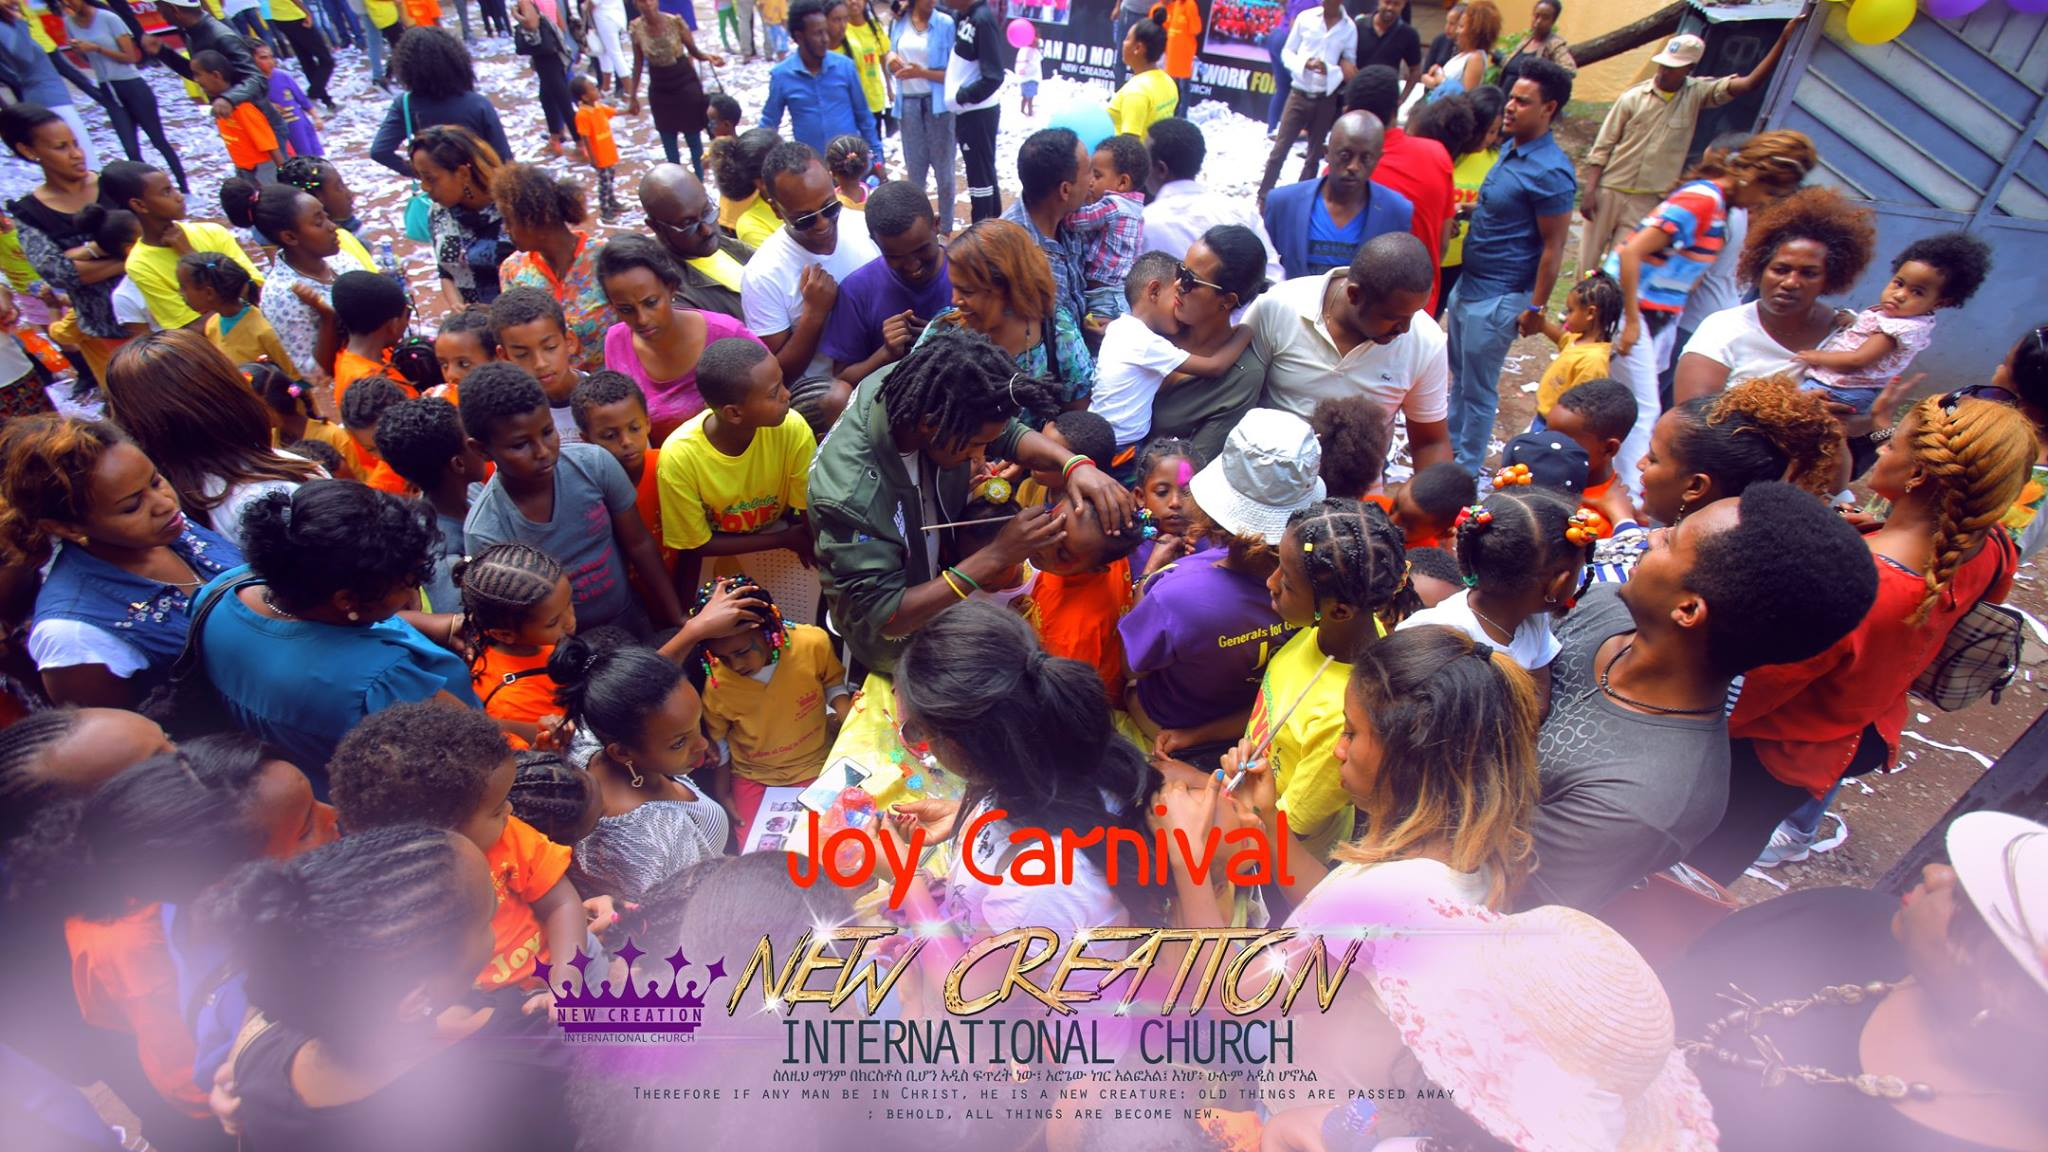 New Creation church Ethiopia Children Ministry Joy Carnival (6)